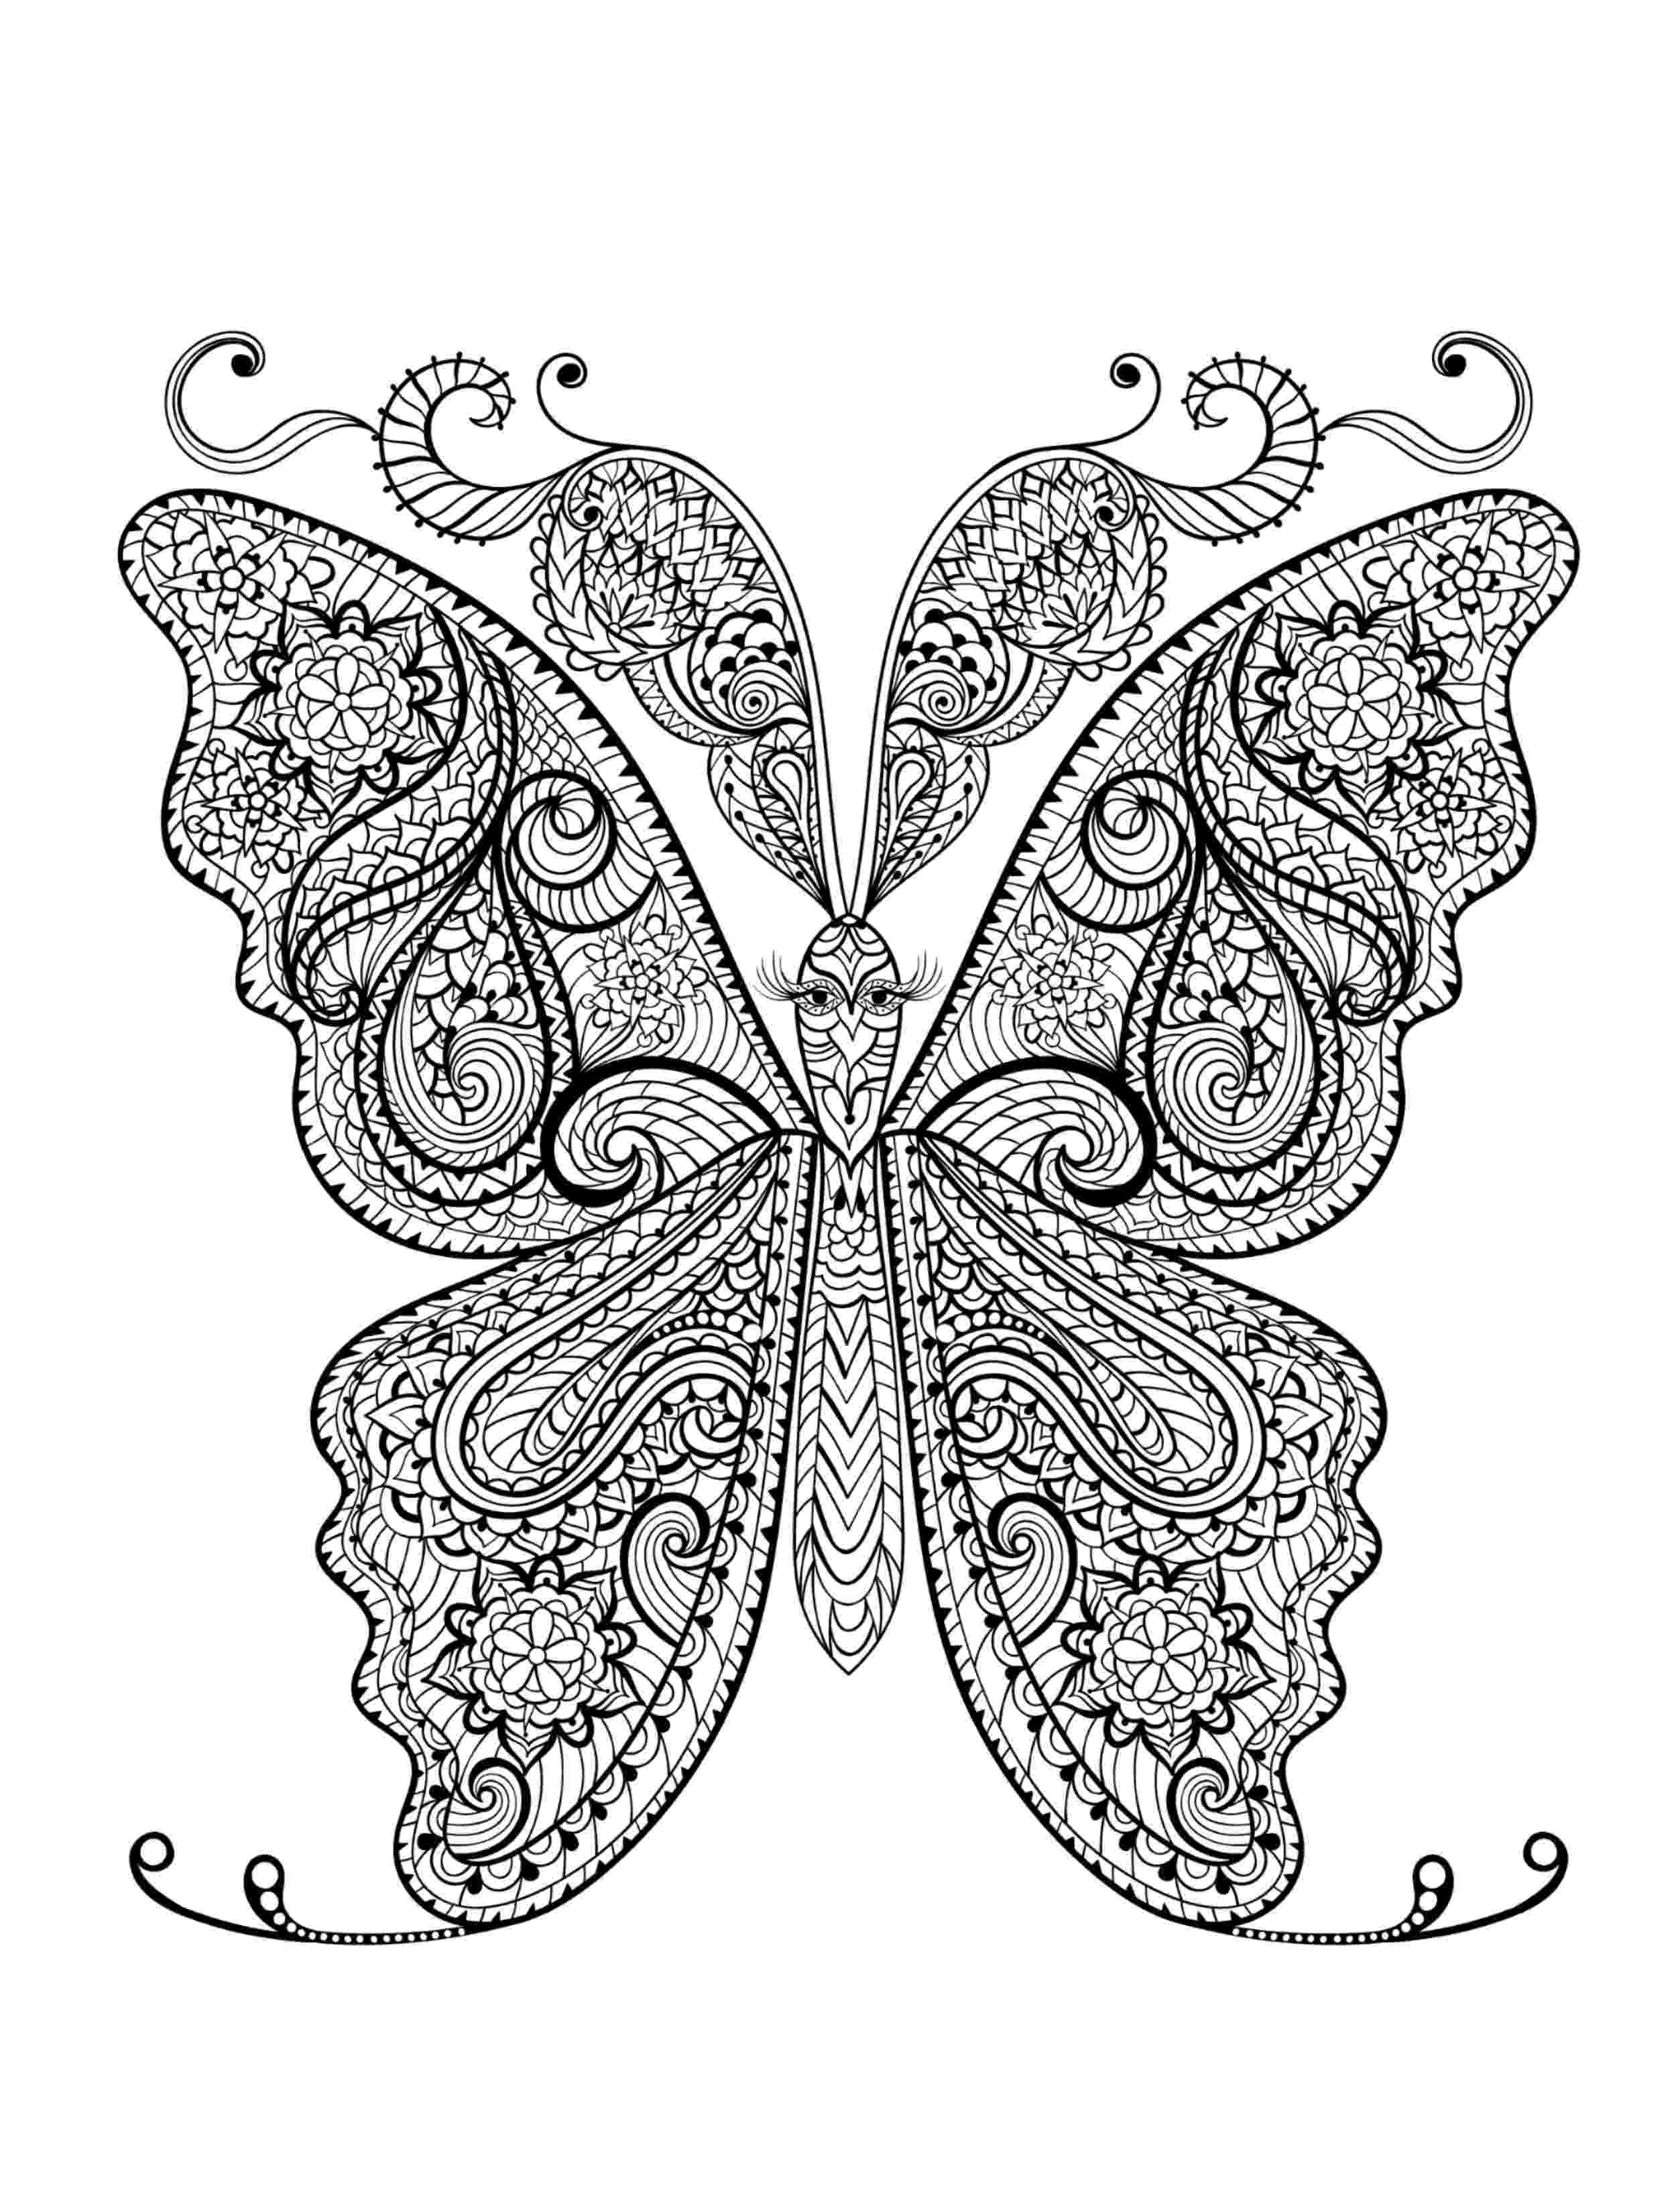 colouring pages for adults animals animal coloring pages for adults best coloring pages for for colouring adults animals pages